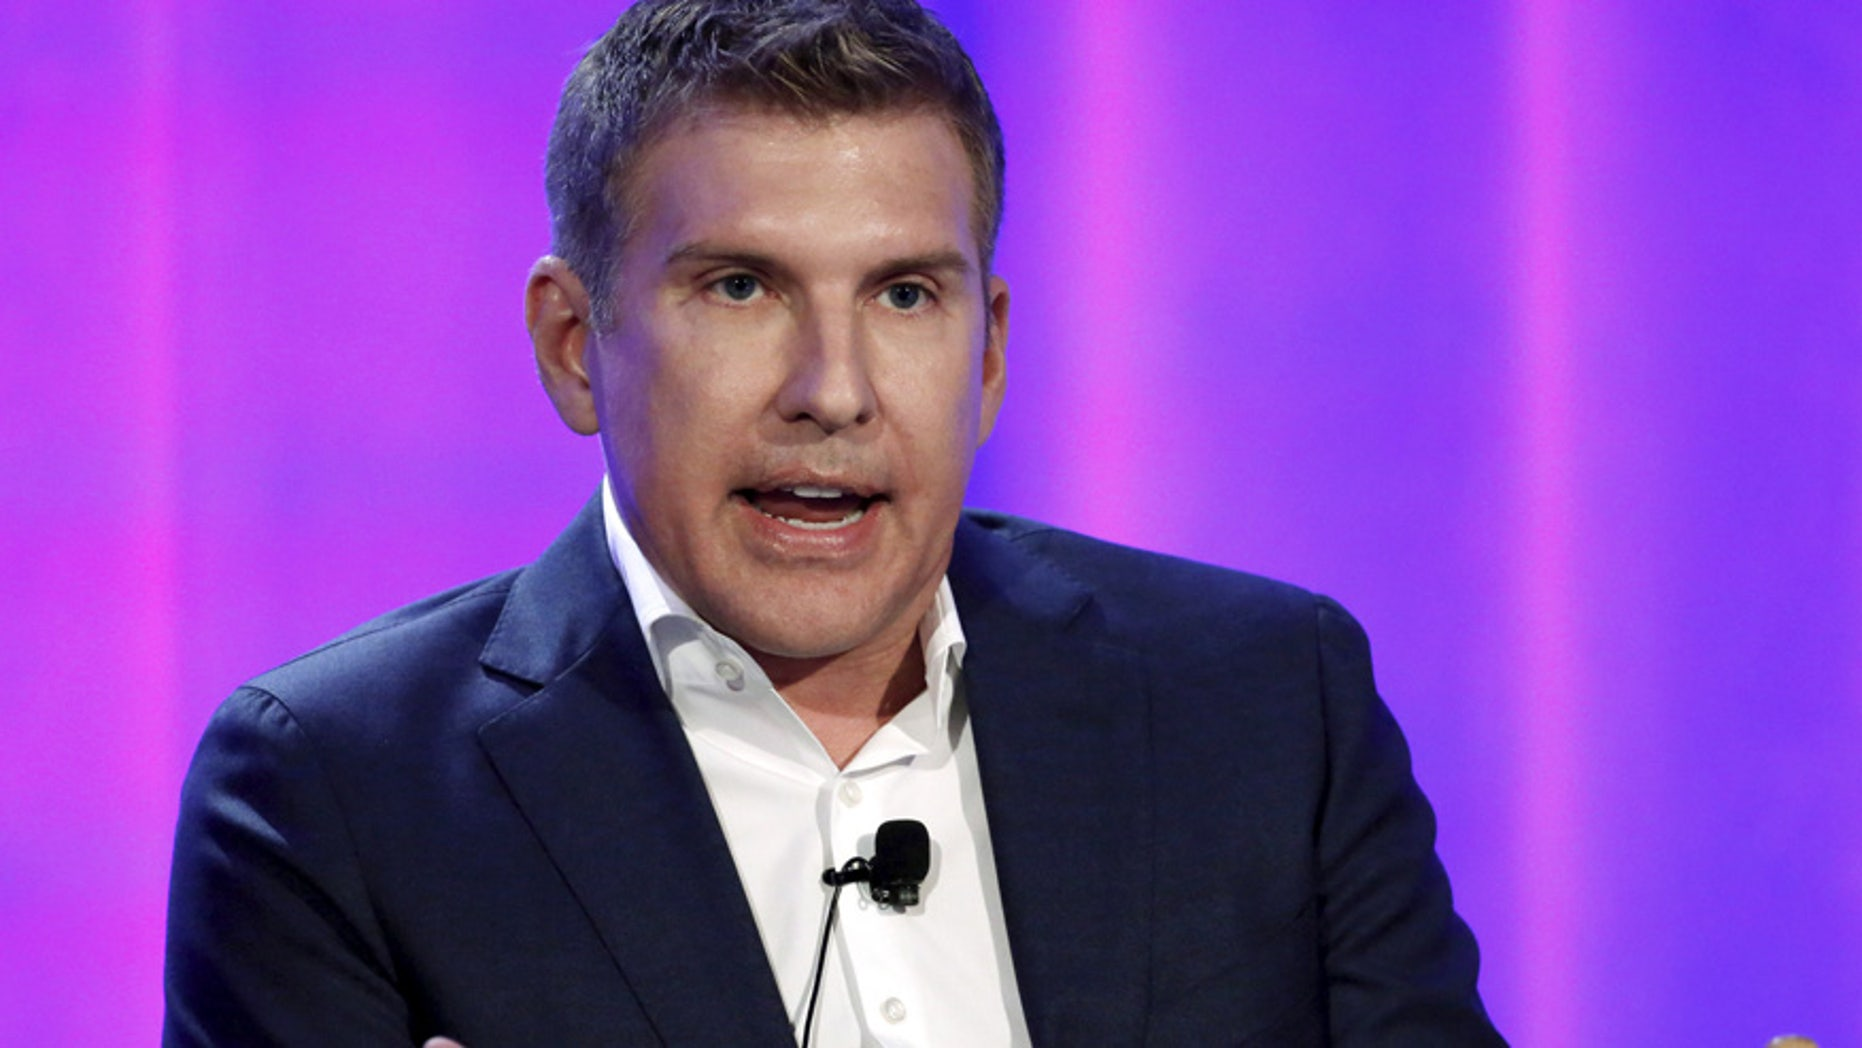 """Cast member Todd Chrisley speaks at a panel for the television series """"Chrisley Knows Best"""" during the NBCUniversal summer press day in Westlake Village, California, April 1, 2016. REUTERS/Mario Anzuoni - RTSD787"""